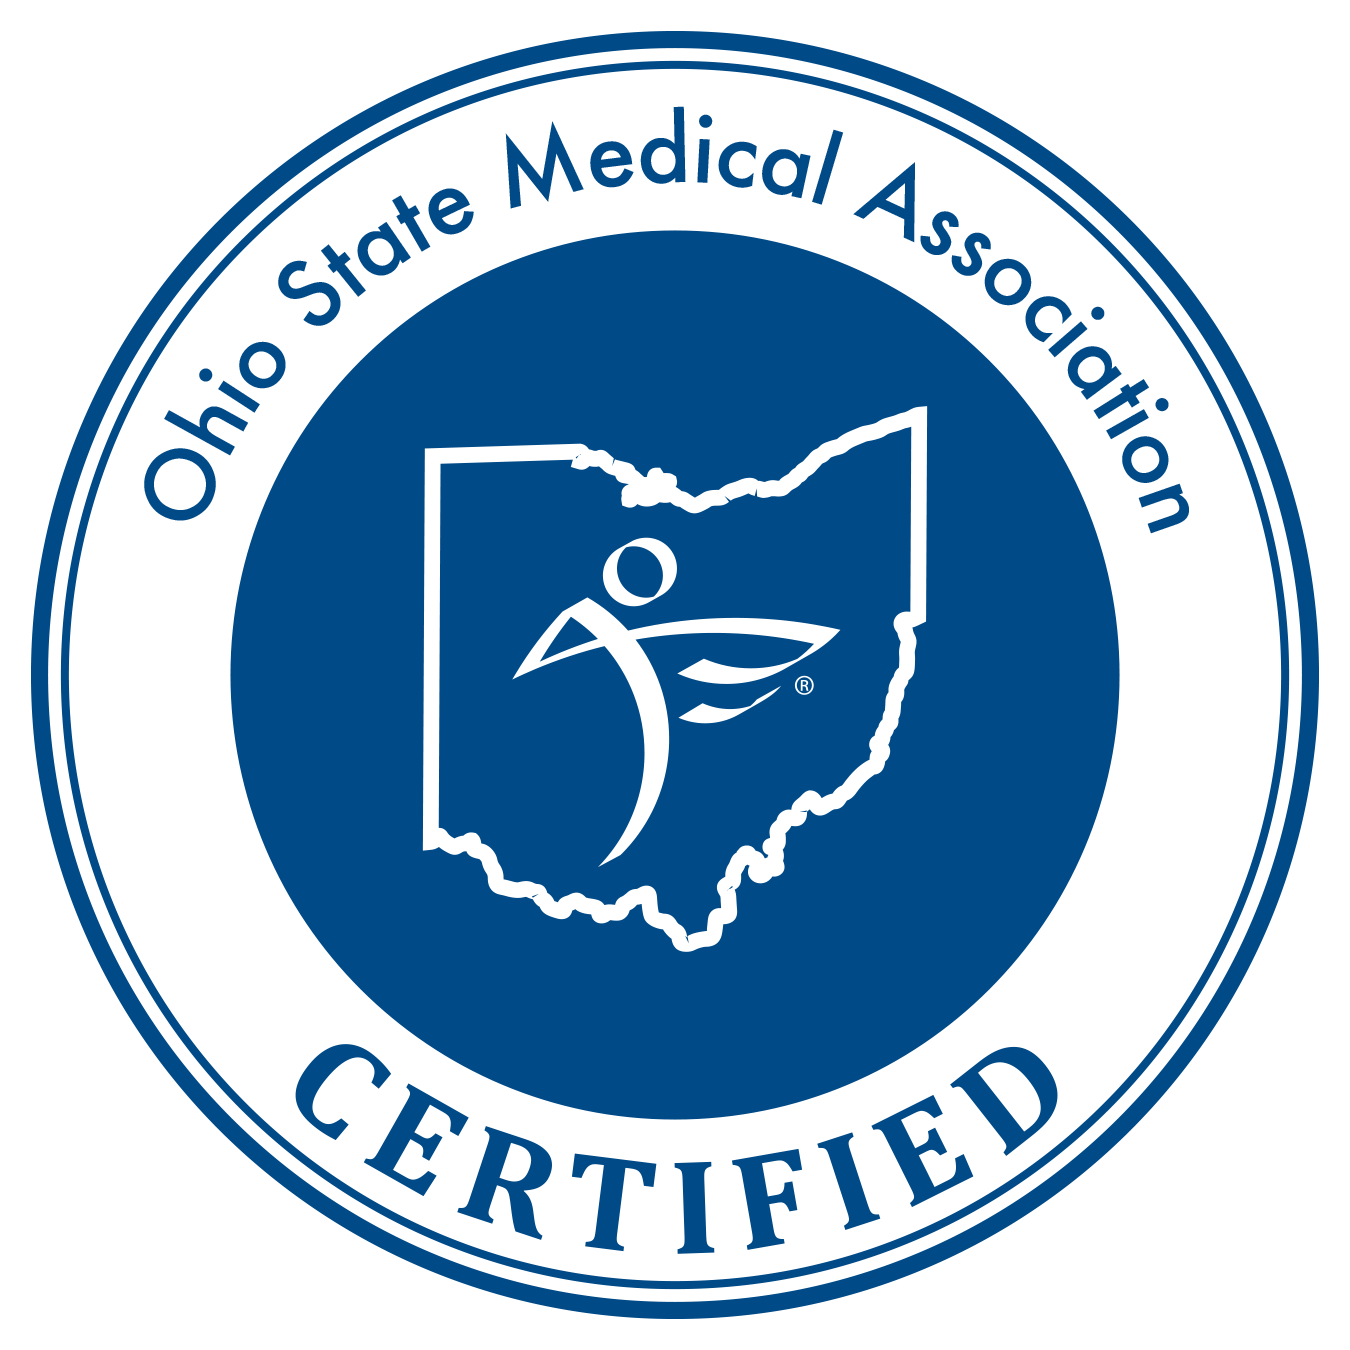 Course provider: The Medical Cannabis Institute